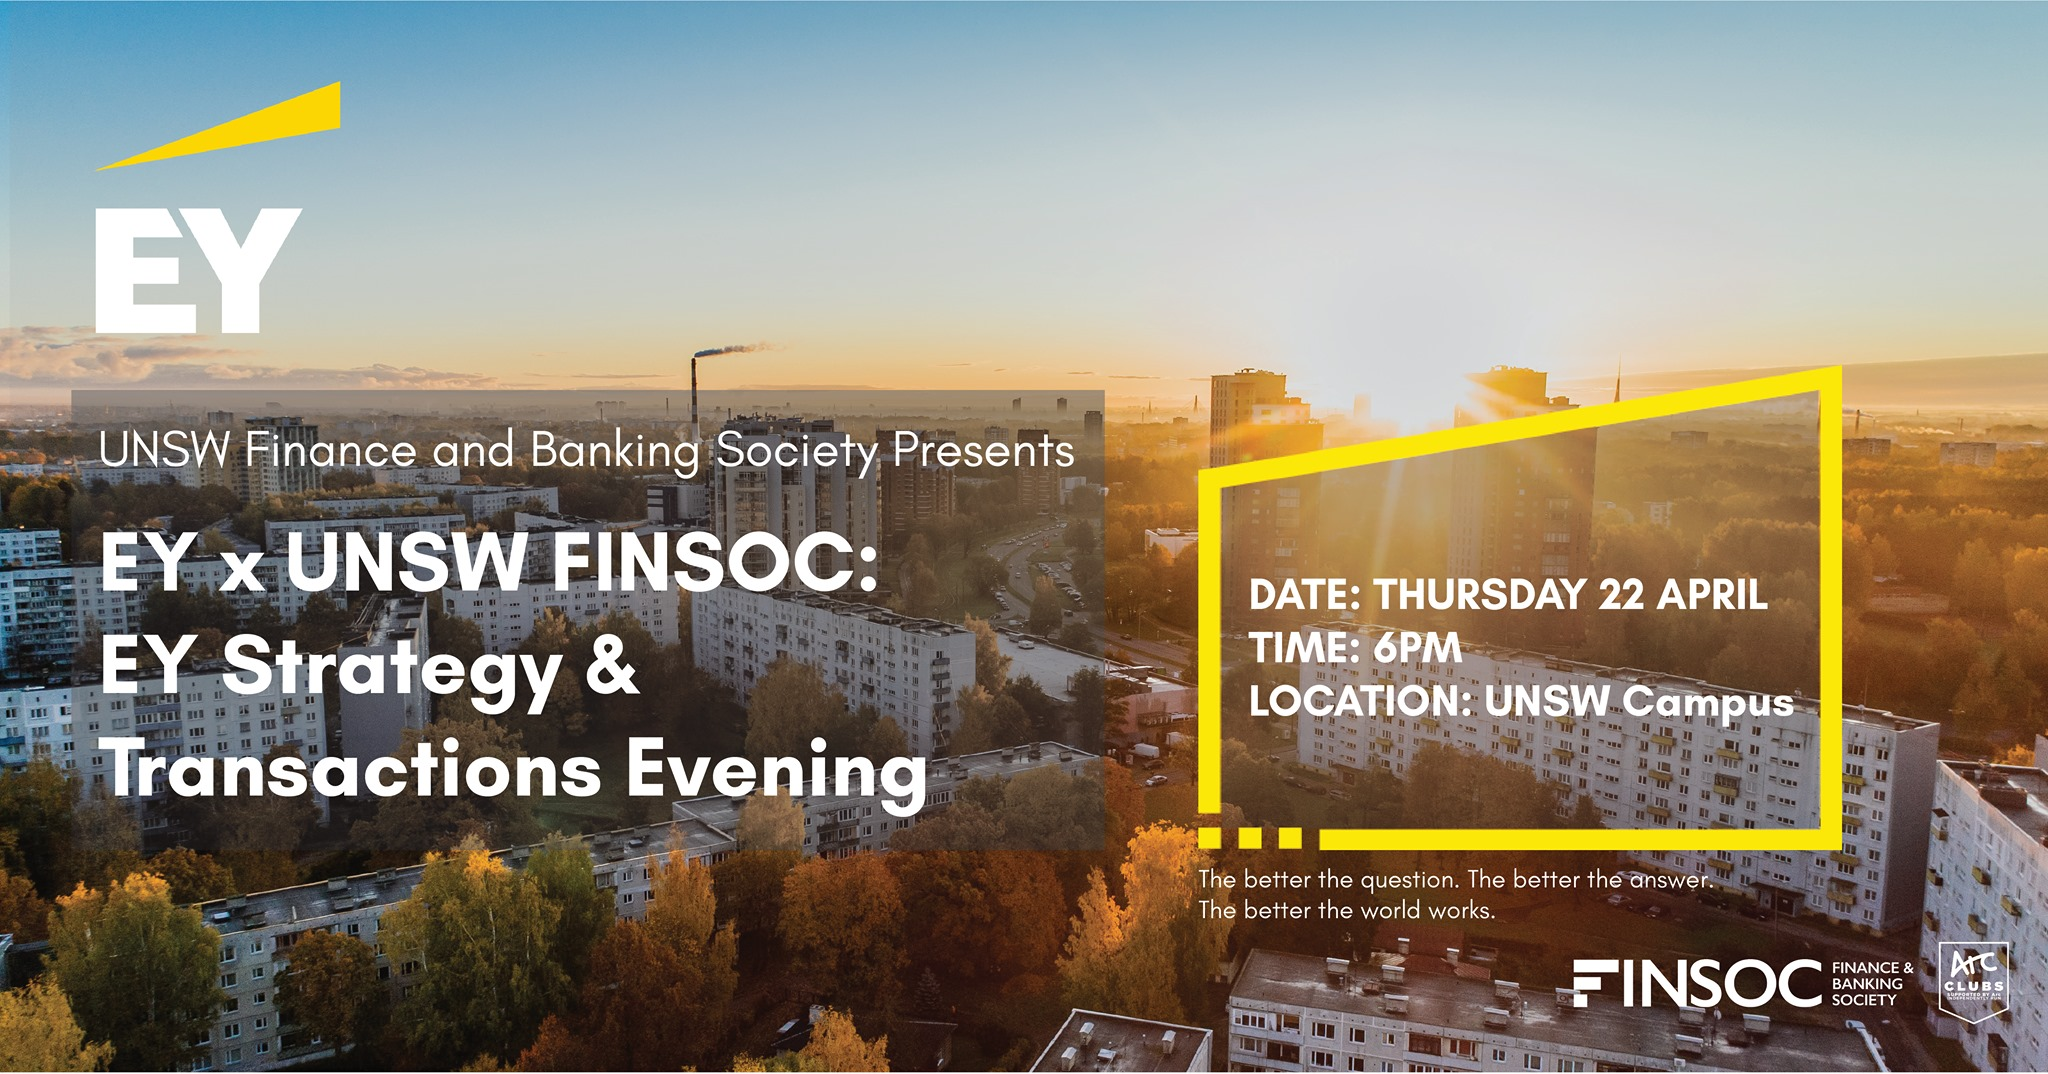 EY Strategy & Transactions Evening